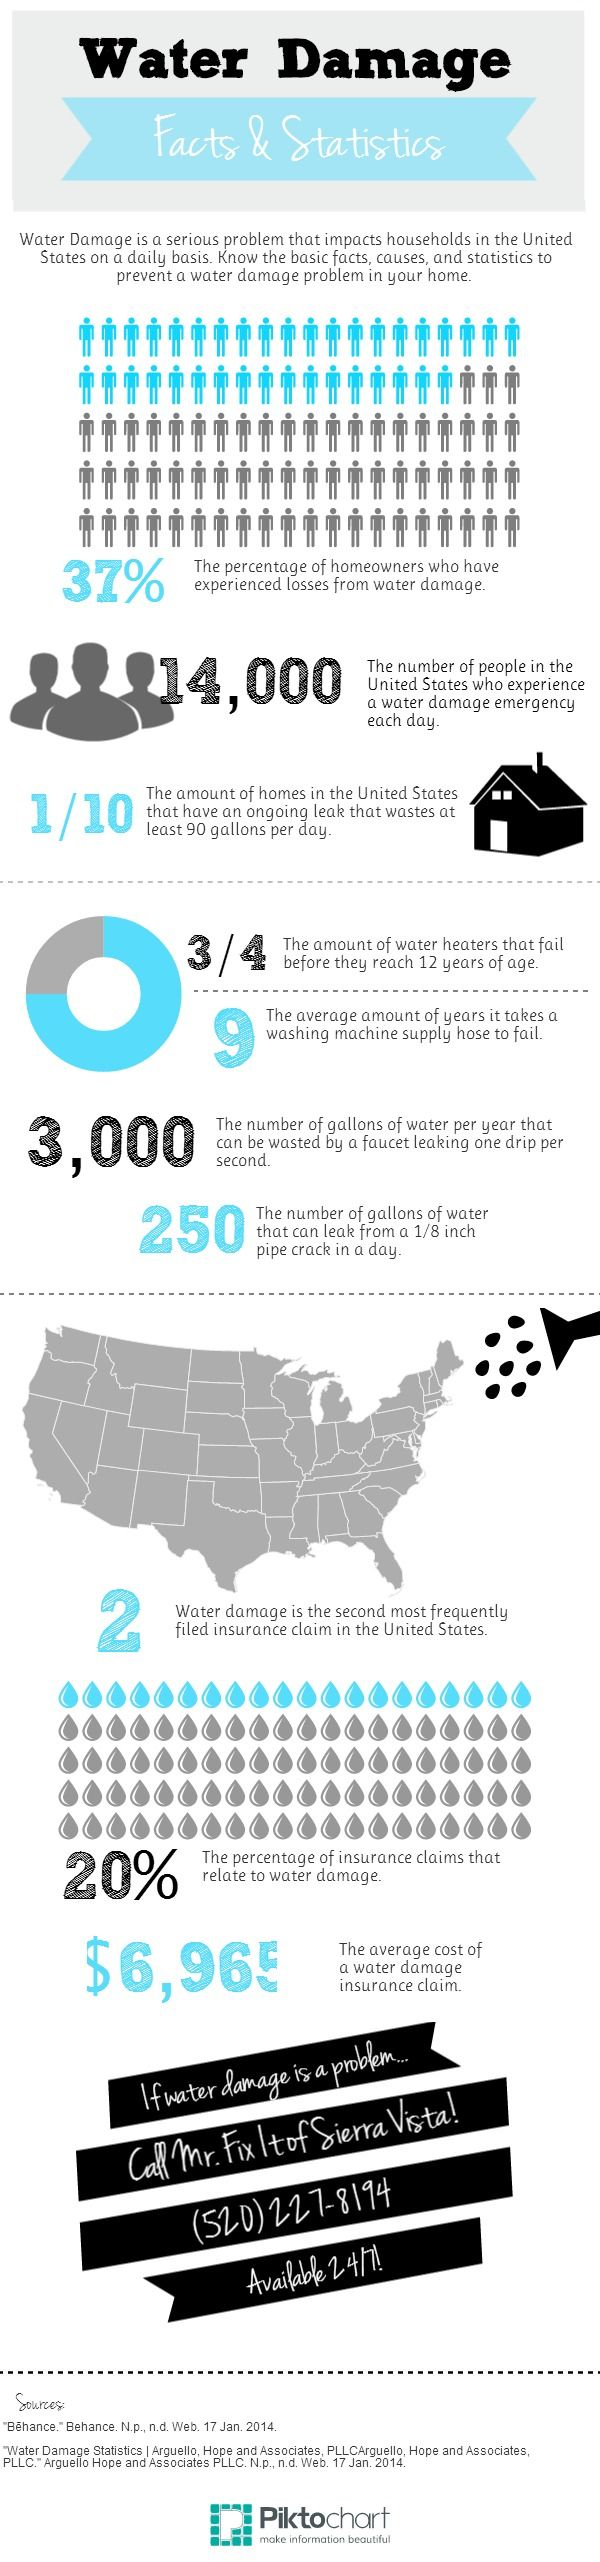 419 best images about best of piktochart infographics on pinterest